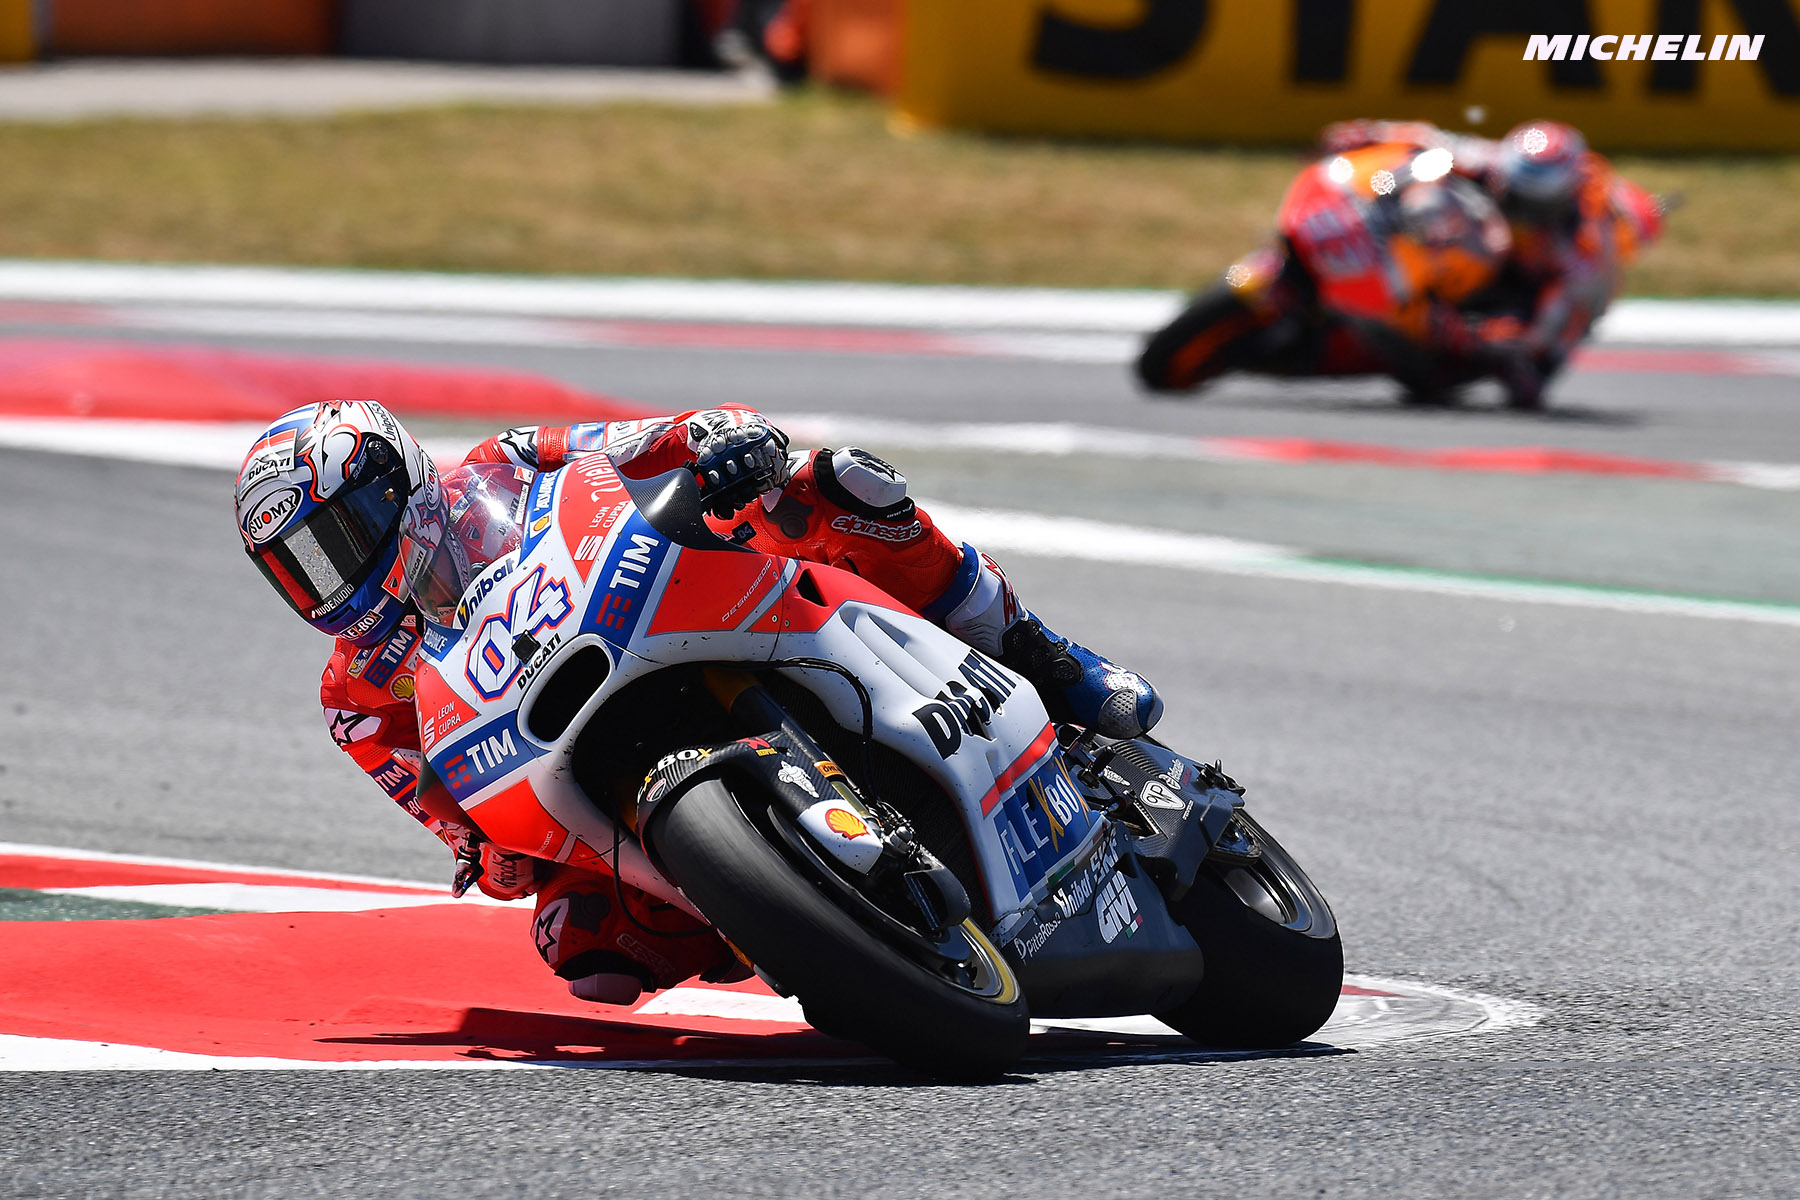 MotoGP: Dovizioso makes it two on the trot in Catalonia